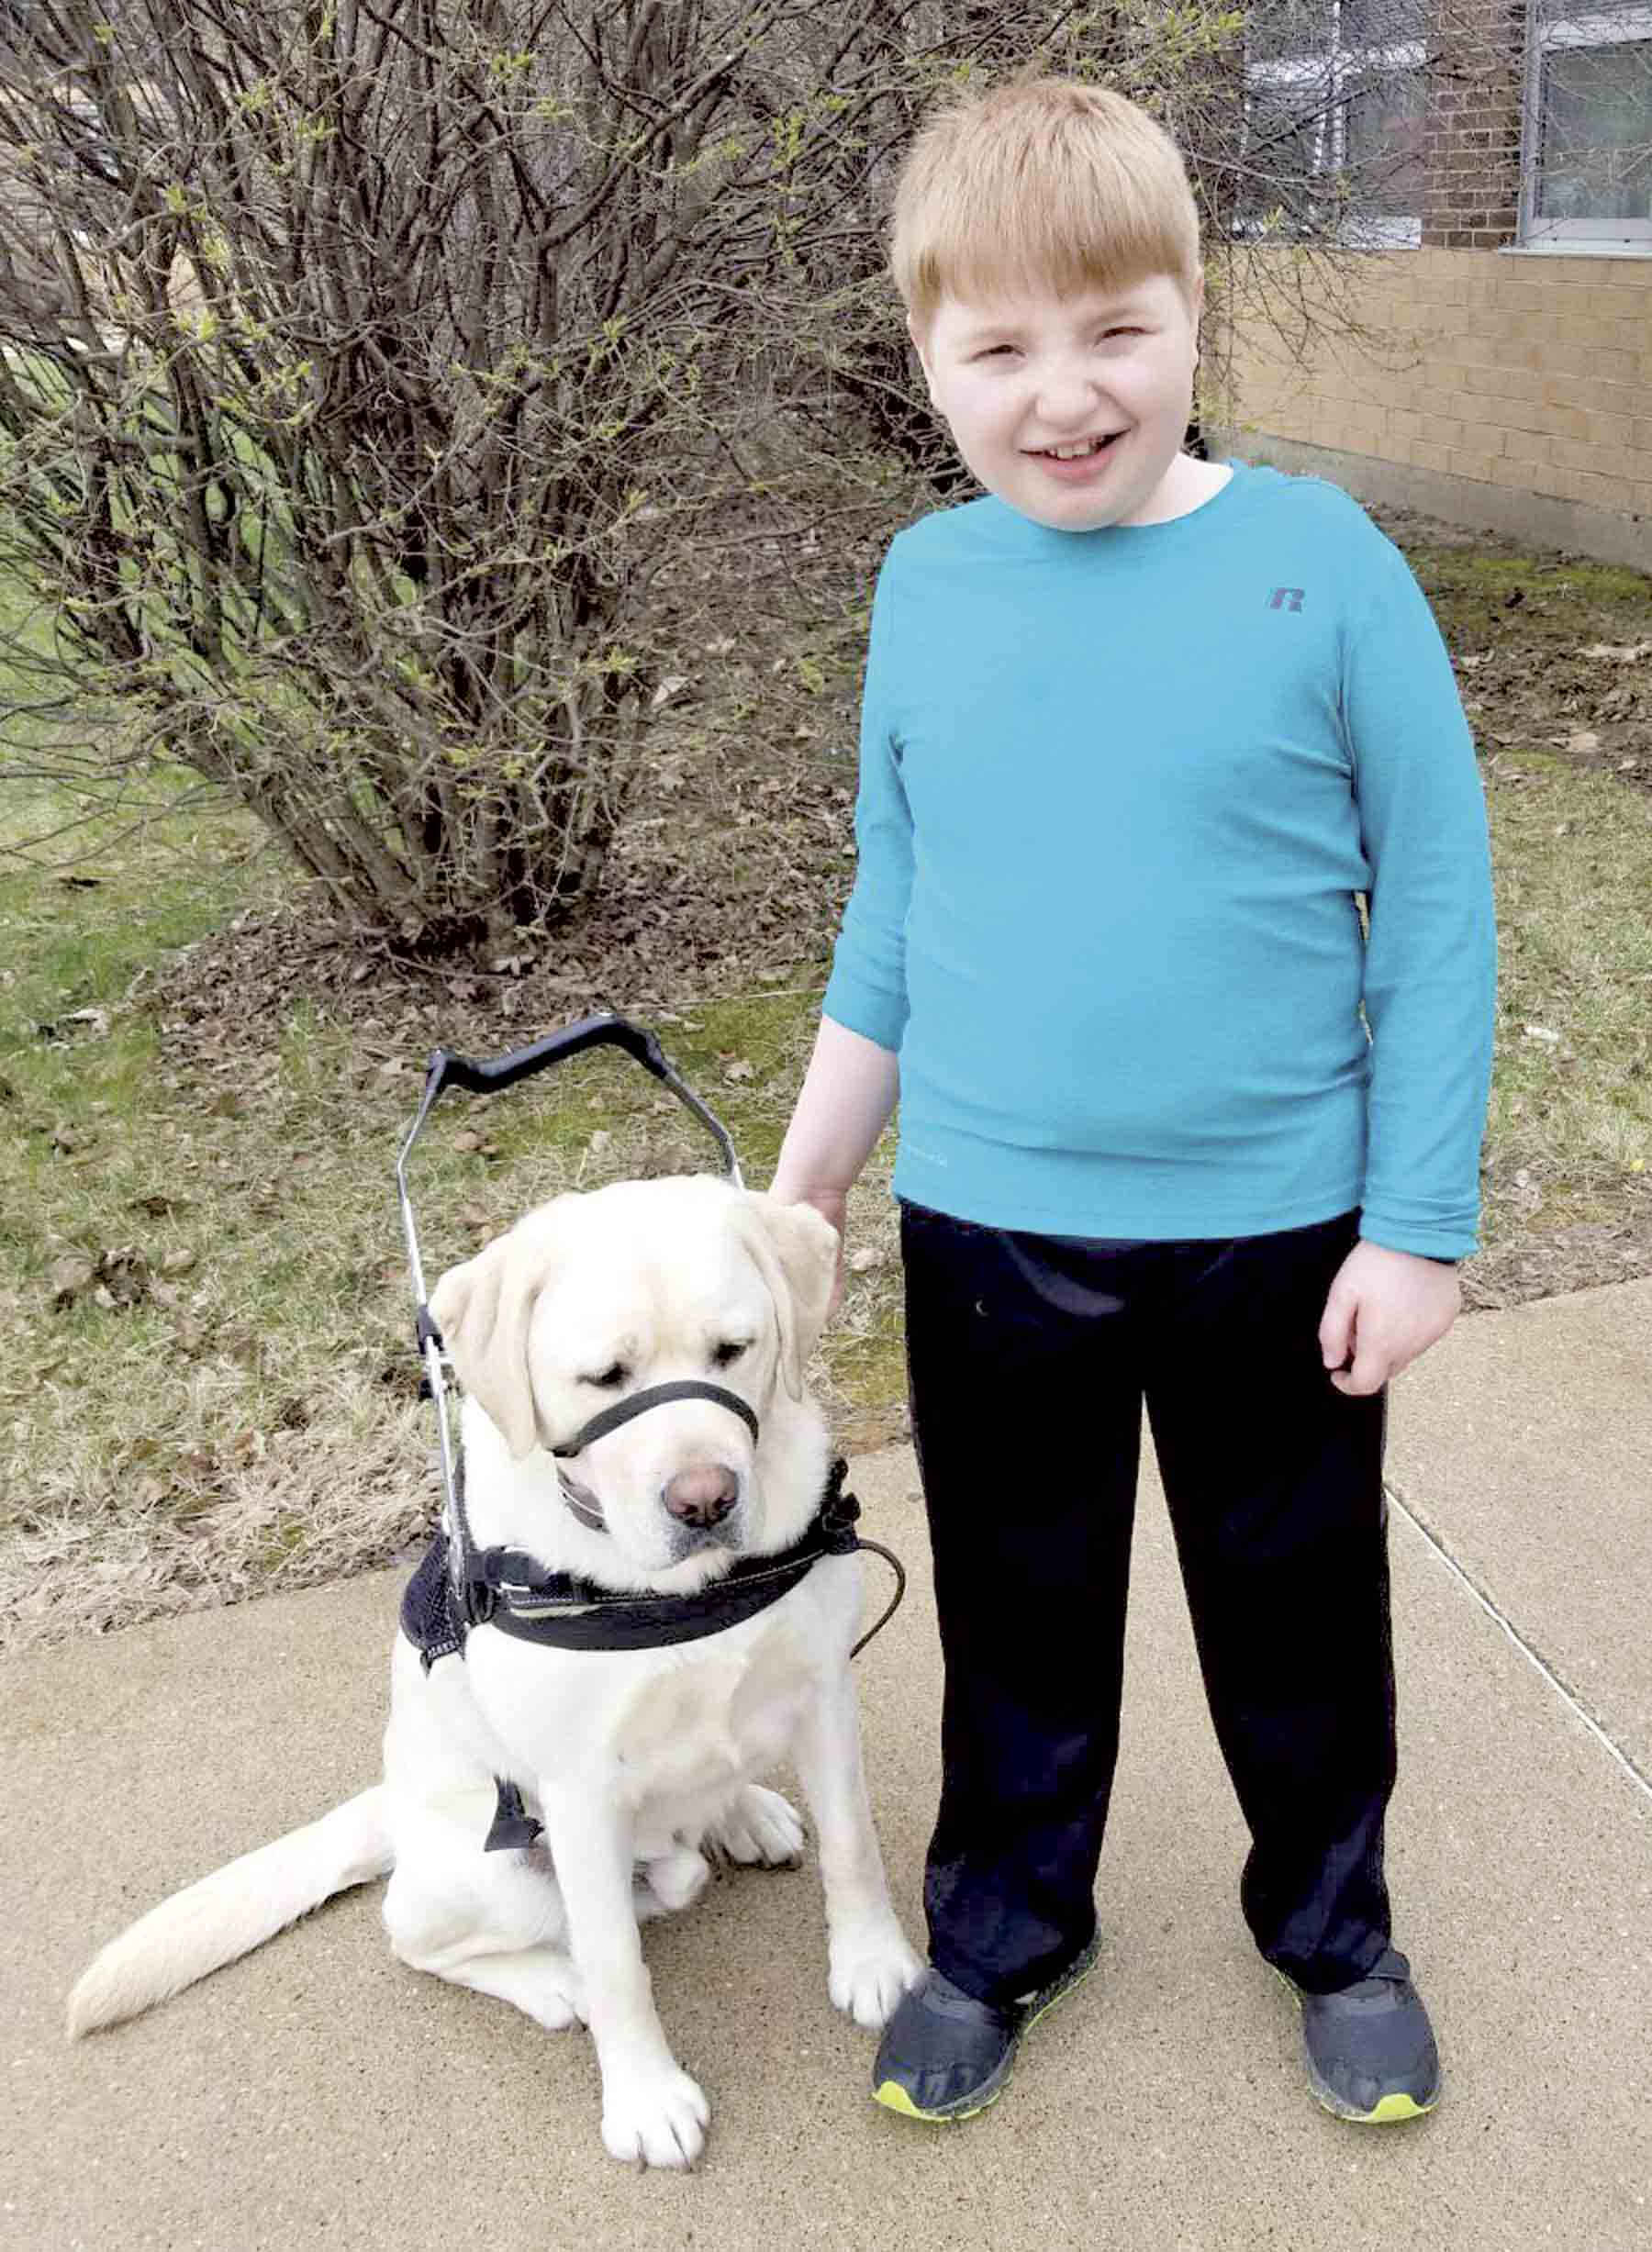 Liam, pictured here with his support dog, Sarge, will be well represented at the third annual 3rd Annual Iowa Strollathon, a fundraiser for Rett Syndrome research at Kinzler Construction in Ankeny on Saturday May 4th from 11a.m. to 2 p.mWoods takes a stroll towards a cure...